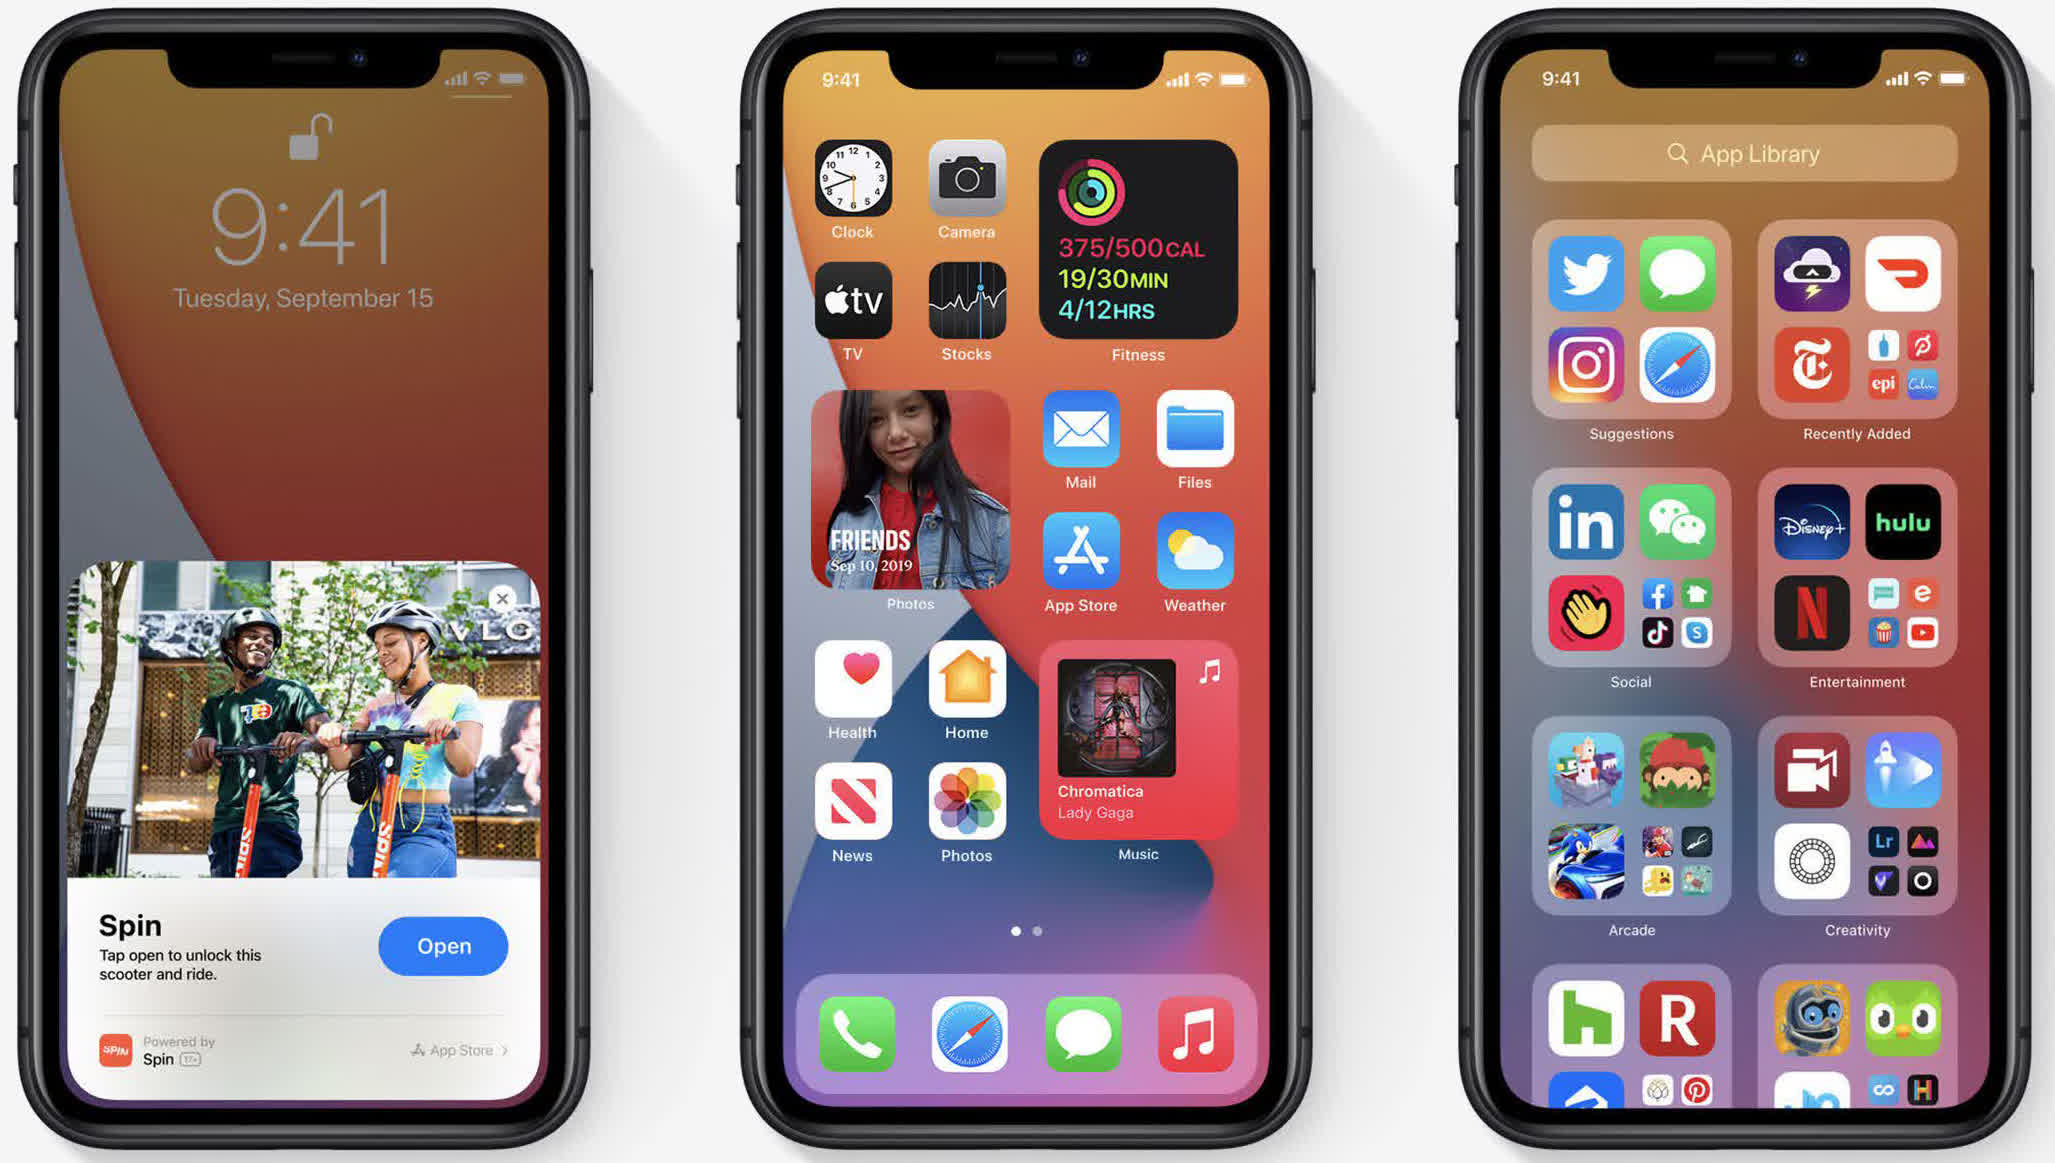 iOS 14.2 is here, with new wallpapers, emoji, and fixes for several known issues